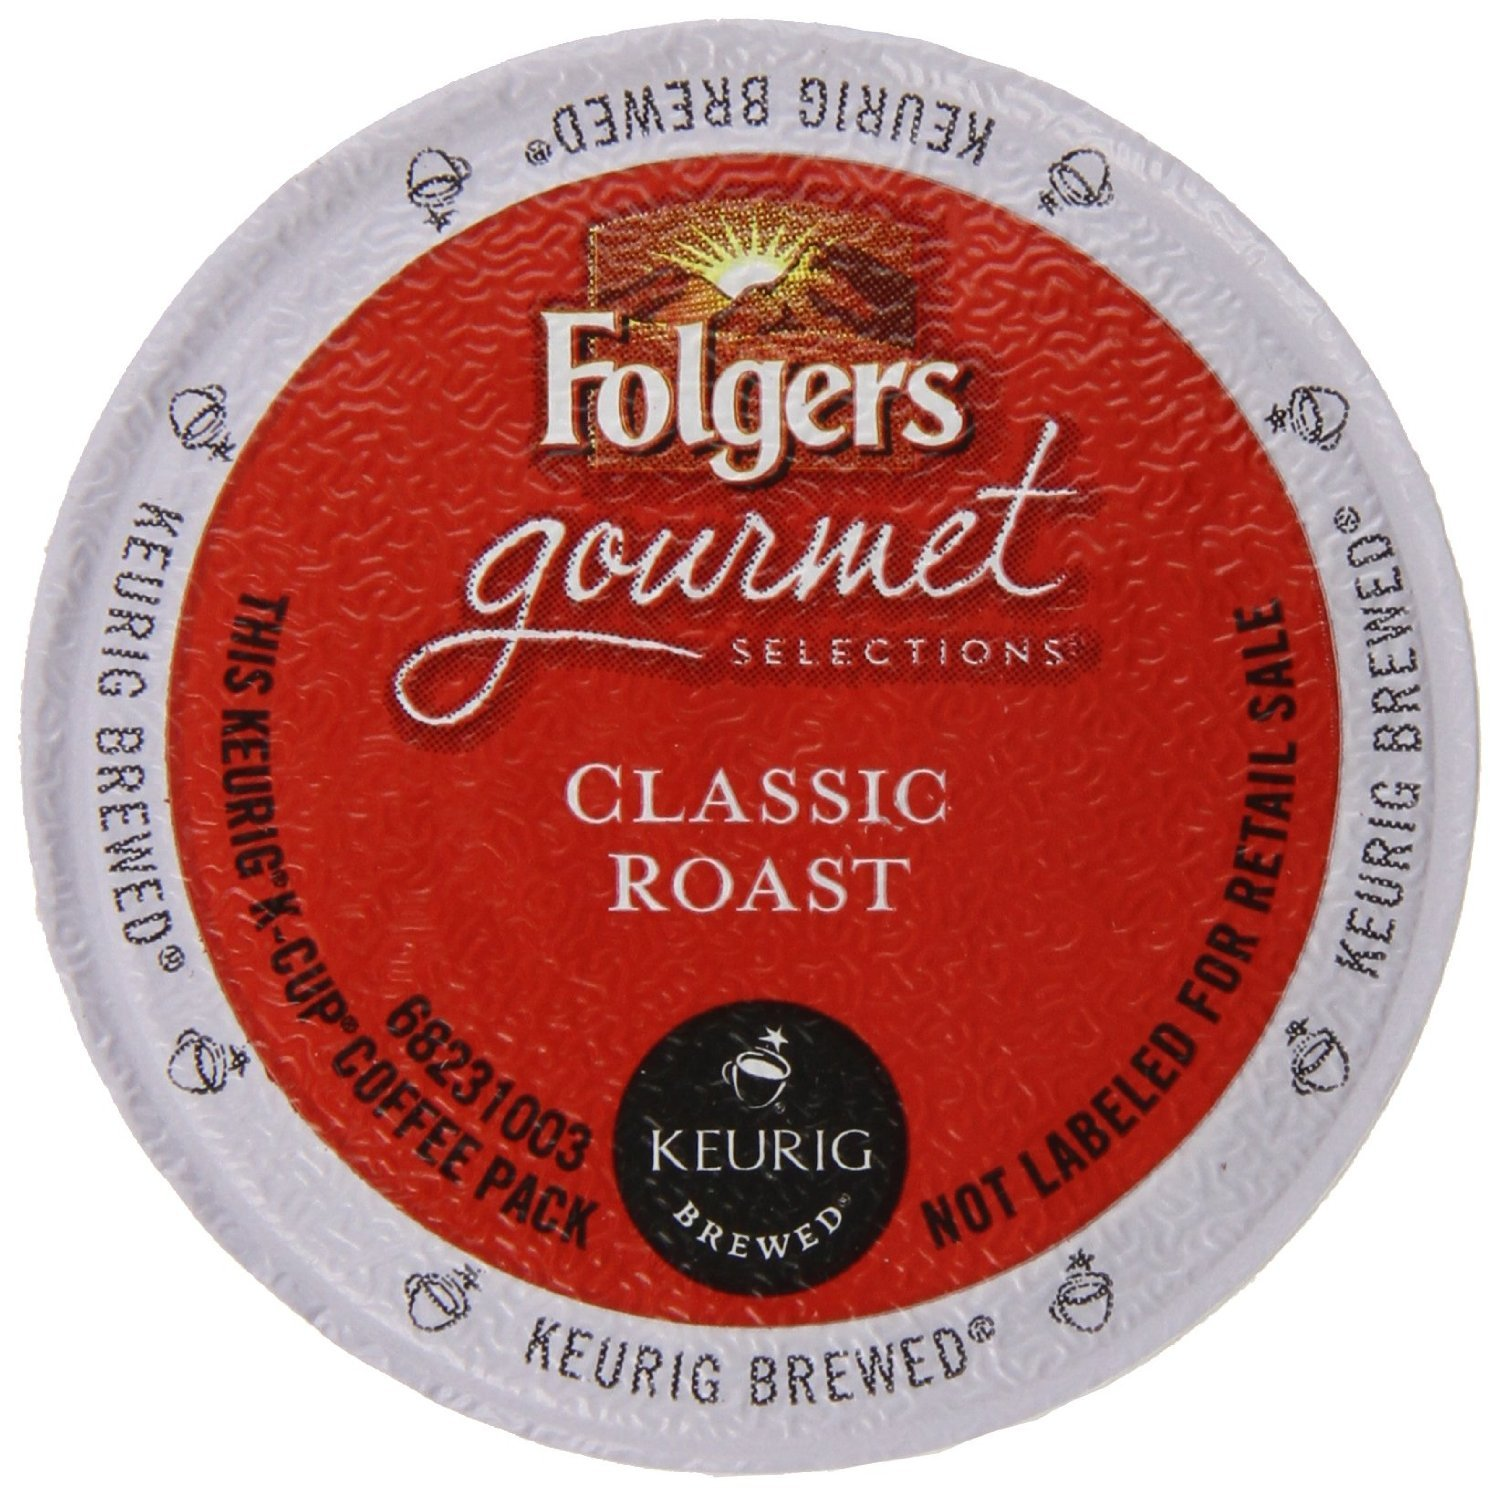 Folgers Coffee K-Cup for Keurig Brewers, Medium Roast, Classic Roast, K-Cup packs, 48-Count